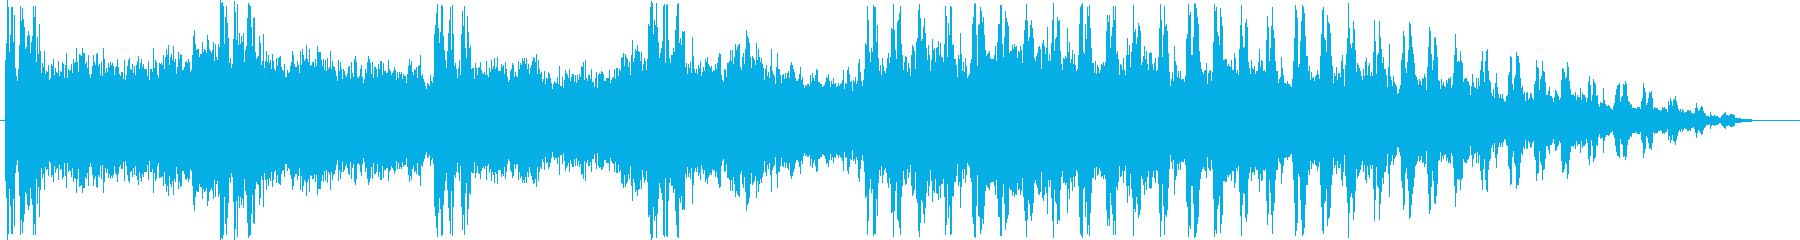 Relaxation music's reproduced waveform